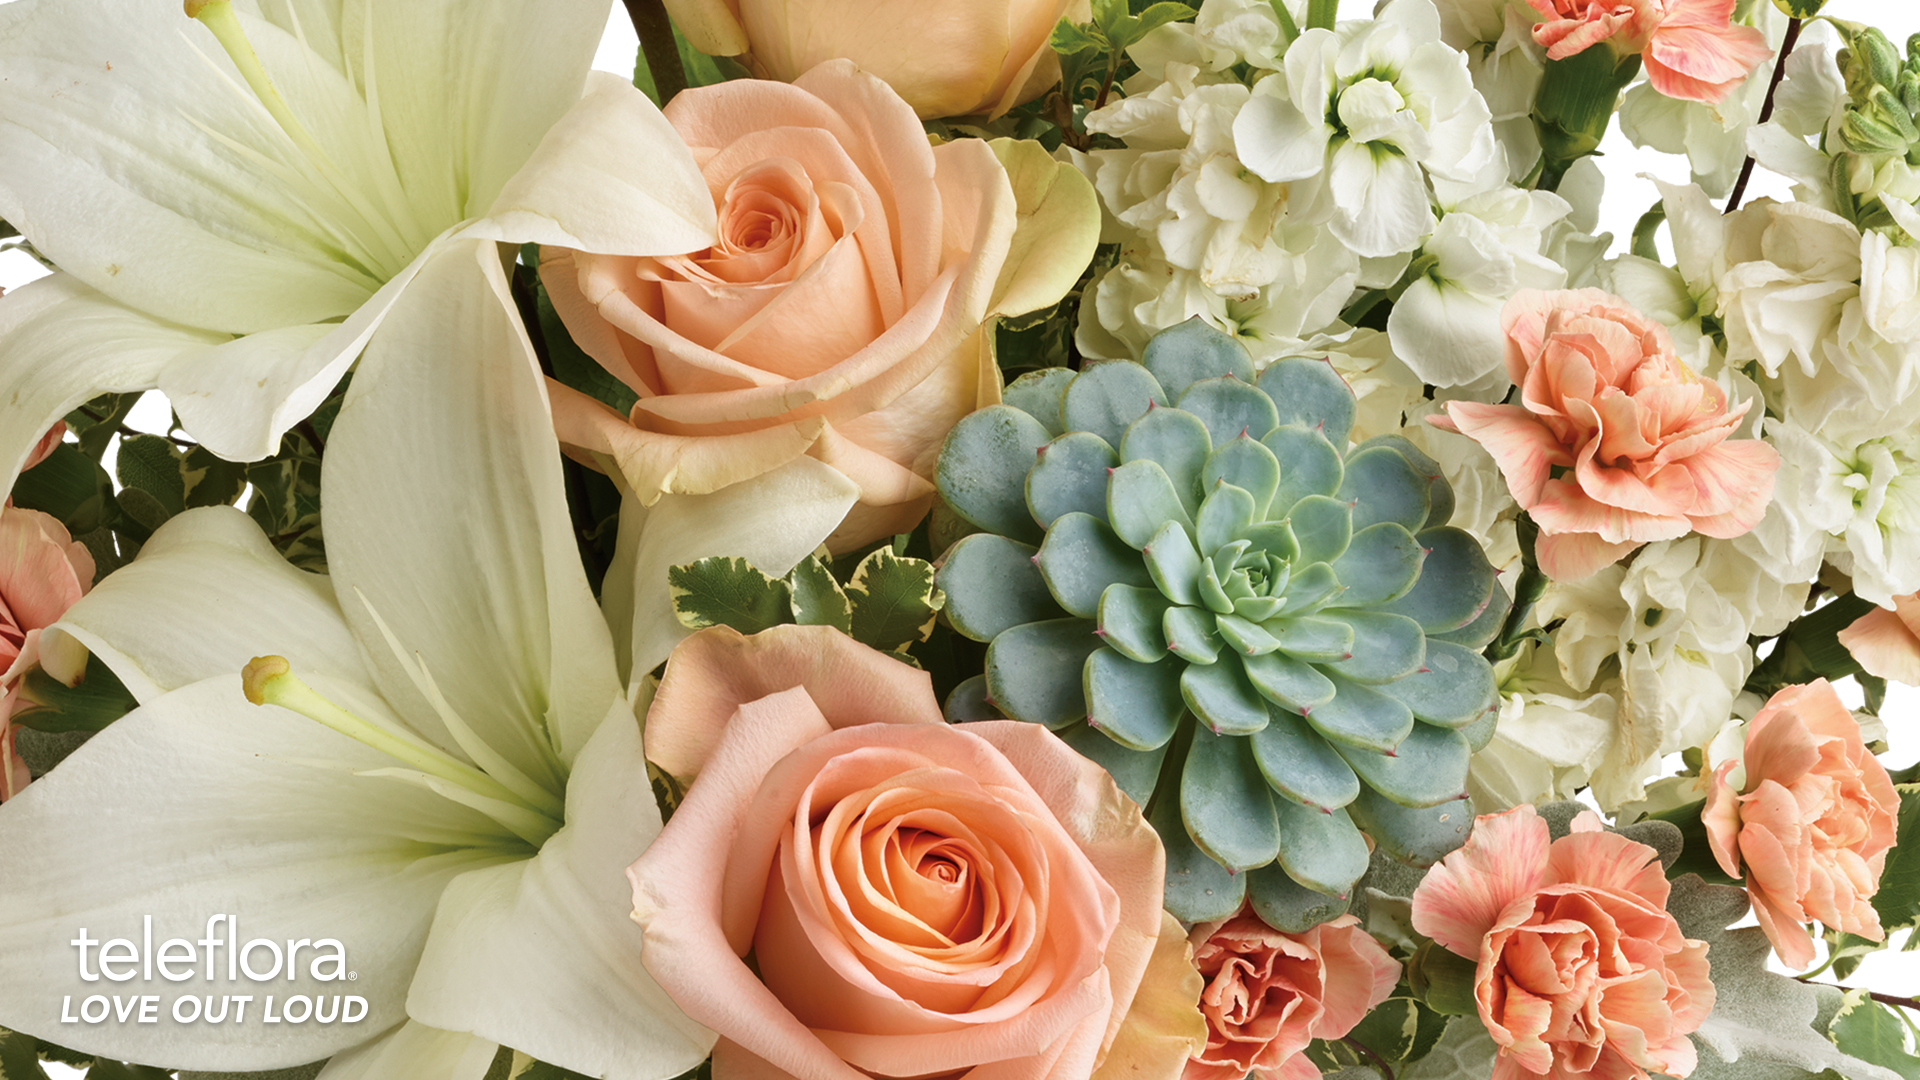 peach roses and succulents background